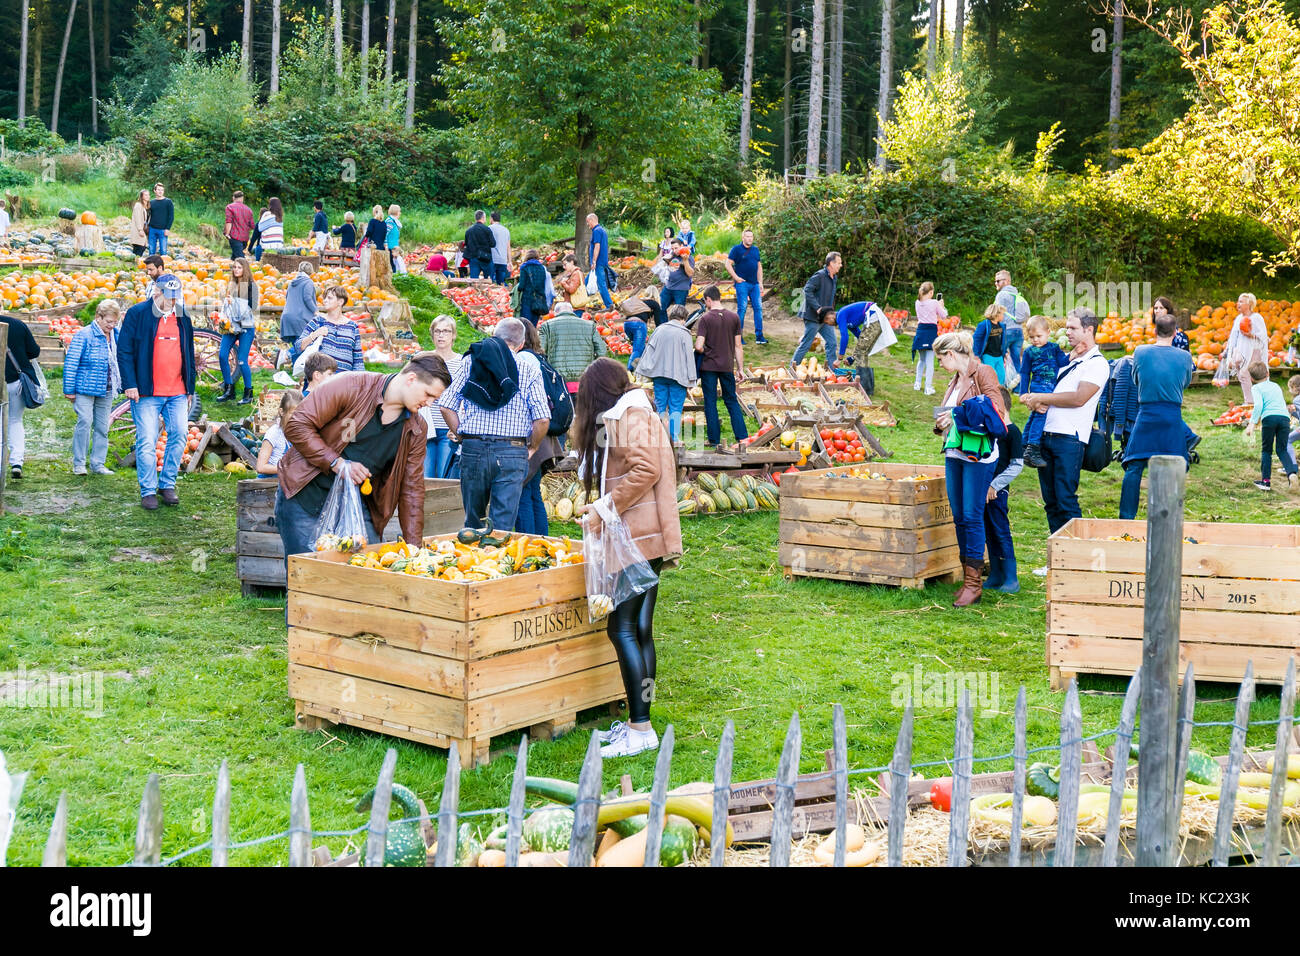 MERODE, GERMANY - SEPTEMBER 23, 2017 - People browse a farm market with pumpkins - Stock Image